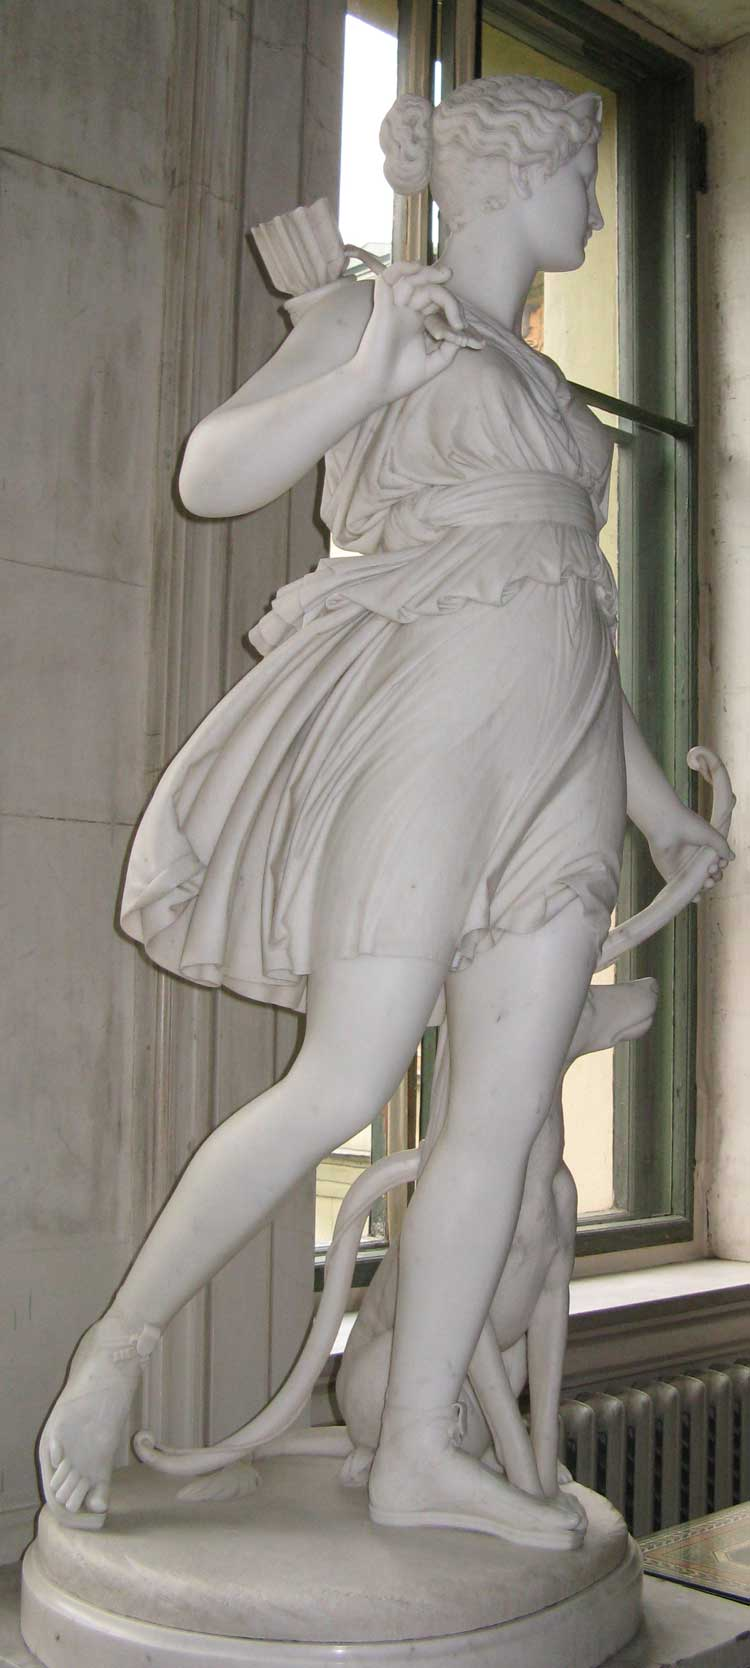 the sculpture of roman goddess diana Find the perfect sculpture the roman goddess diana stock photo huge collection, amazing choice, 100+ million high quality, affordable rf and rm images lemoyne: diana, 1726 /nmarble sculpture of the roman goddess diana, by jean-louis lemoyne, 1726.